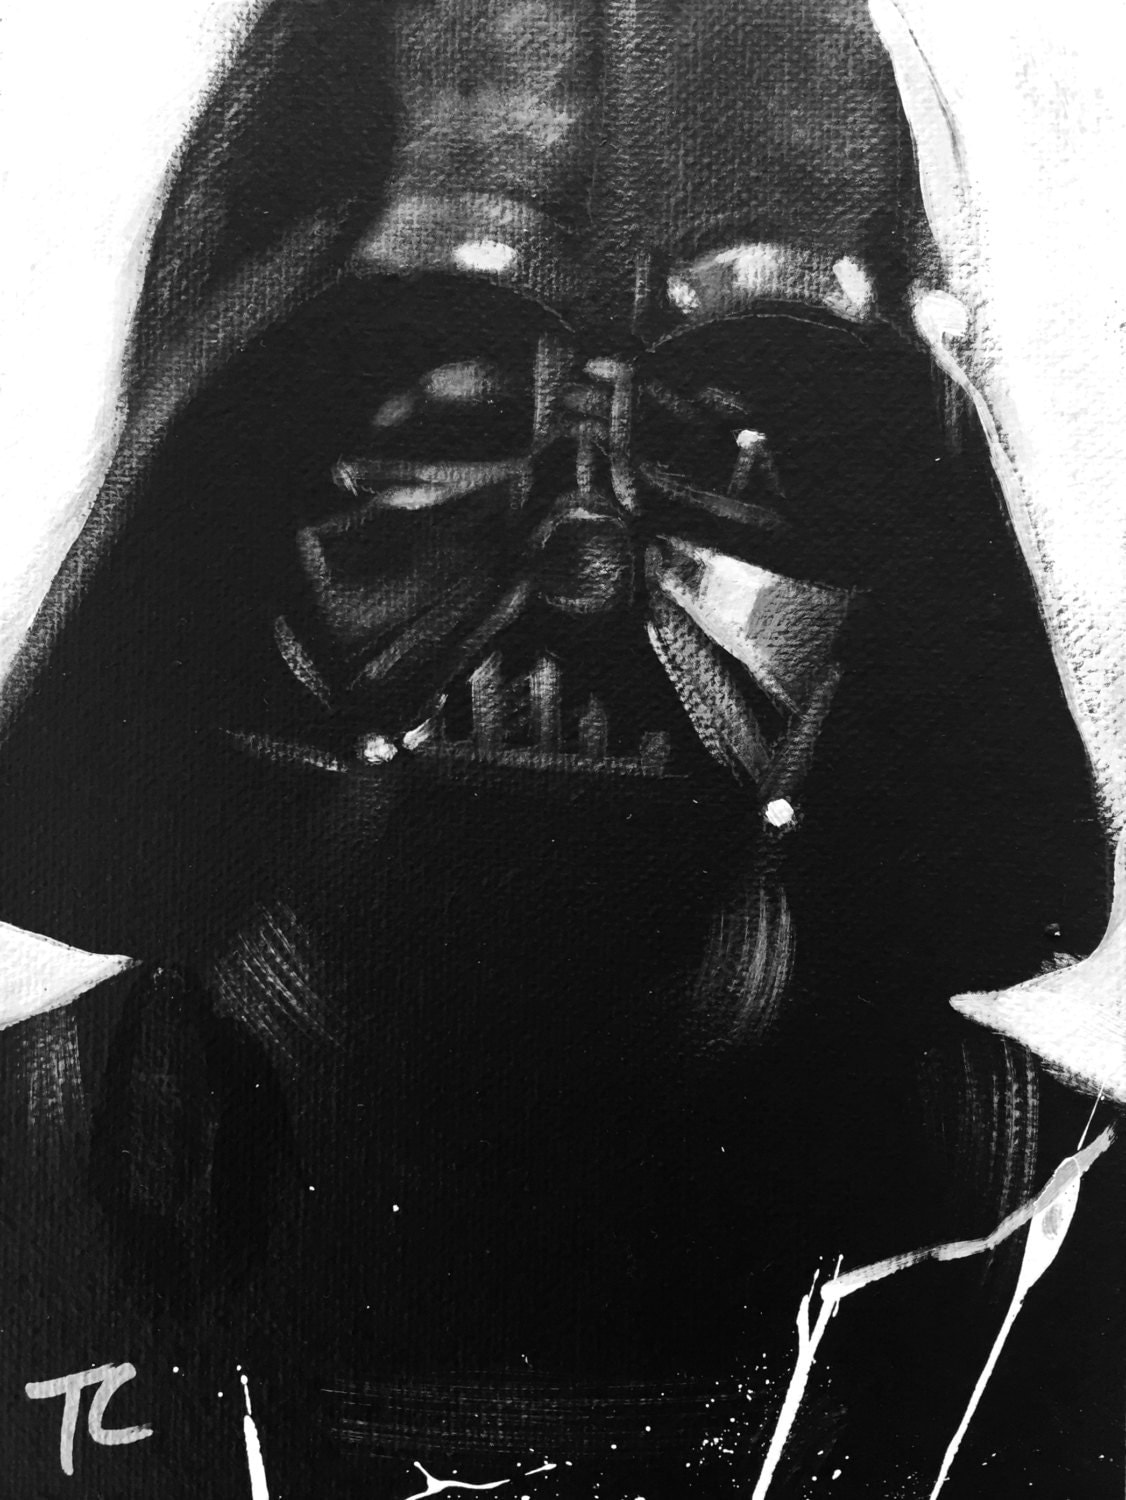 Darth vader black white art portrait by selphroadstudios for Darth vader black and white